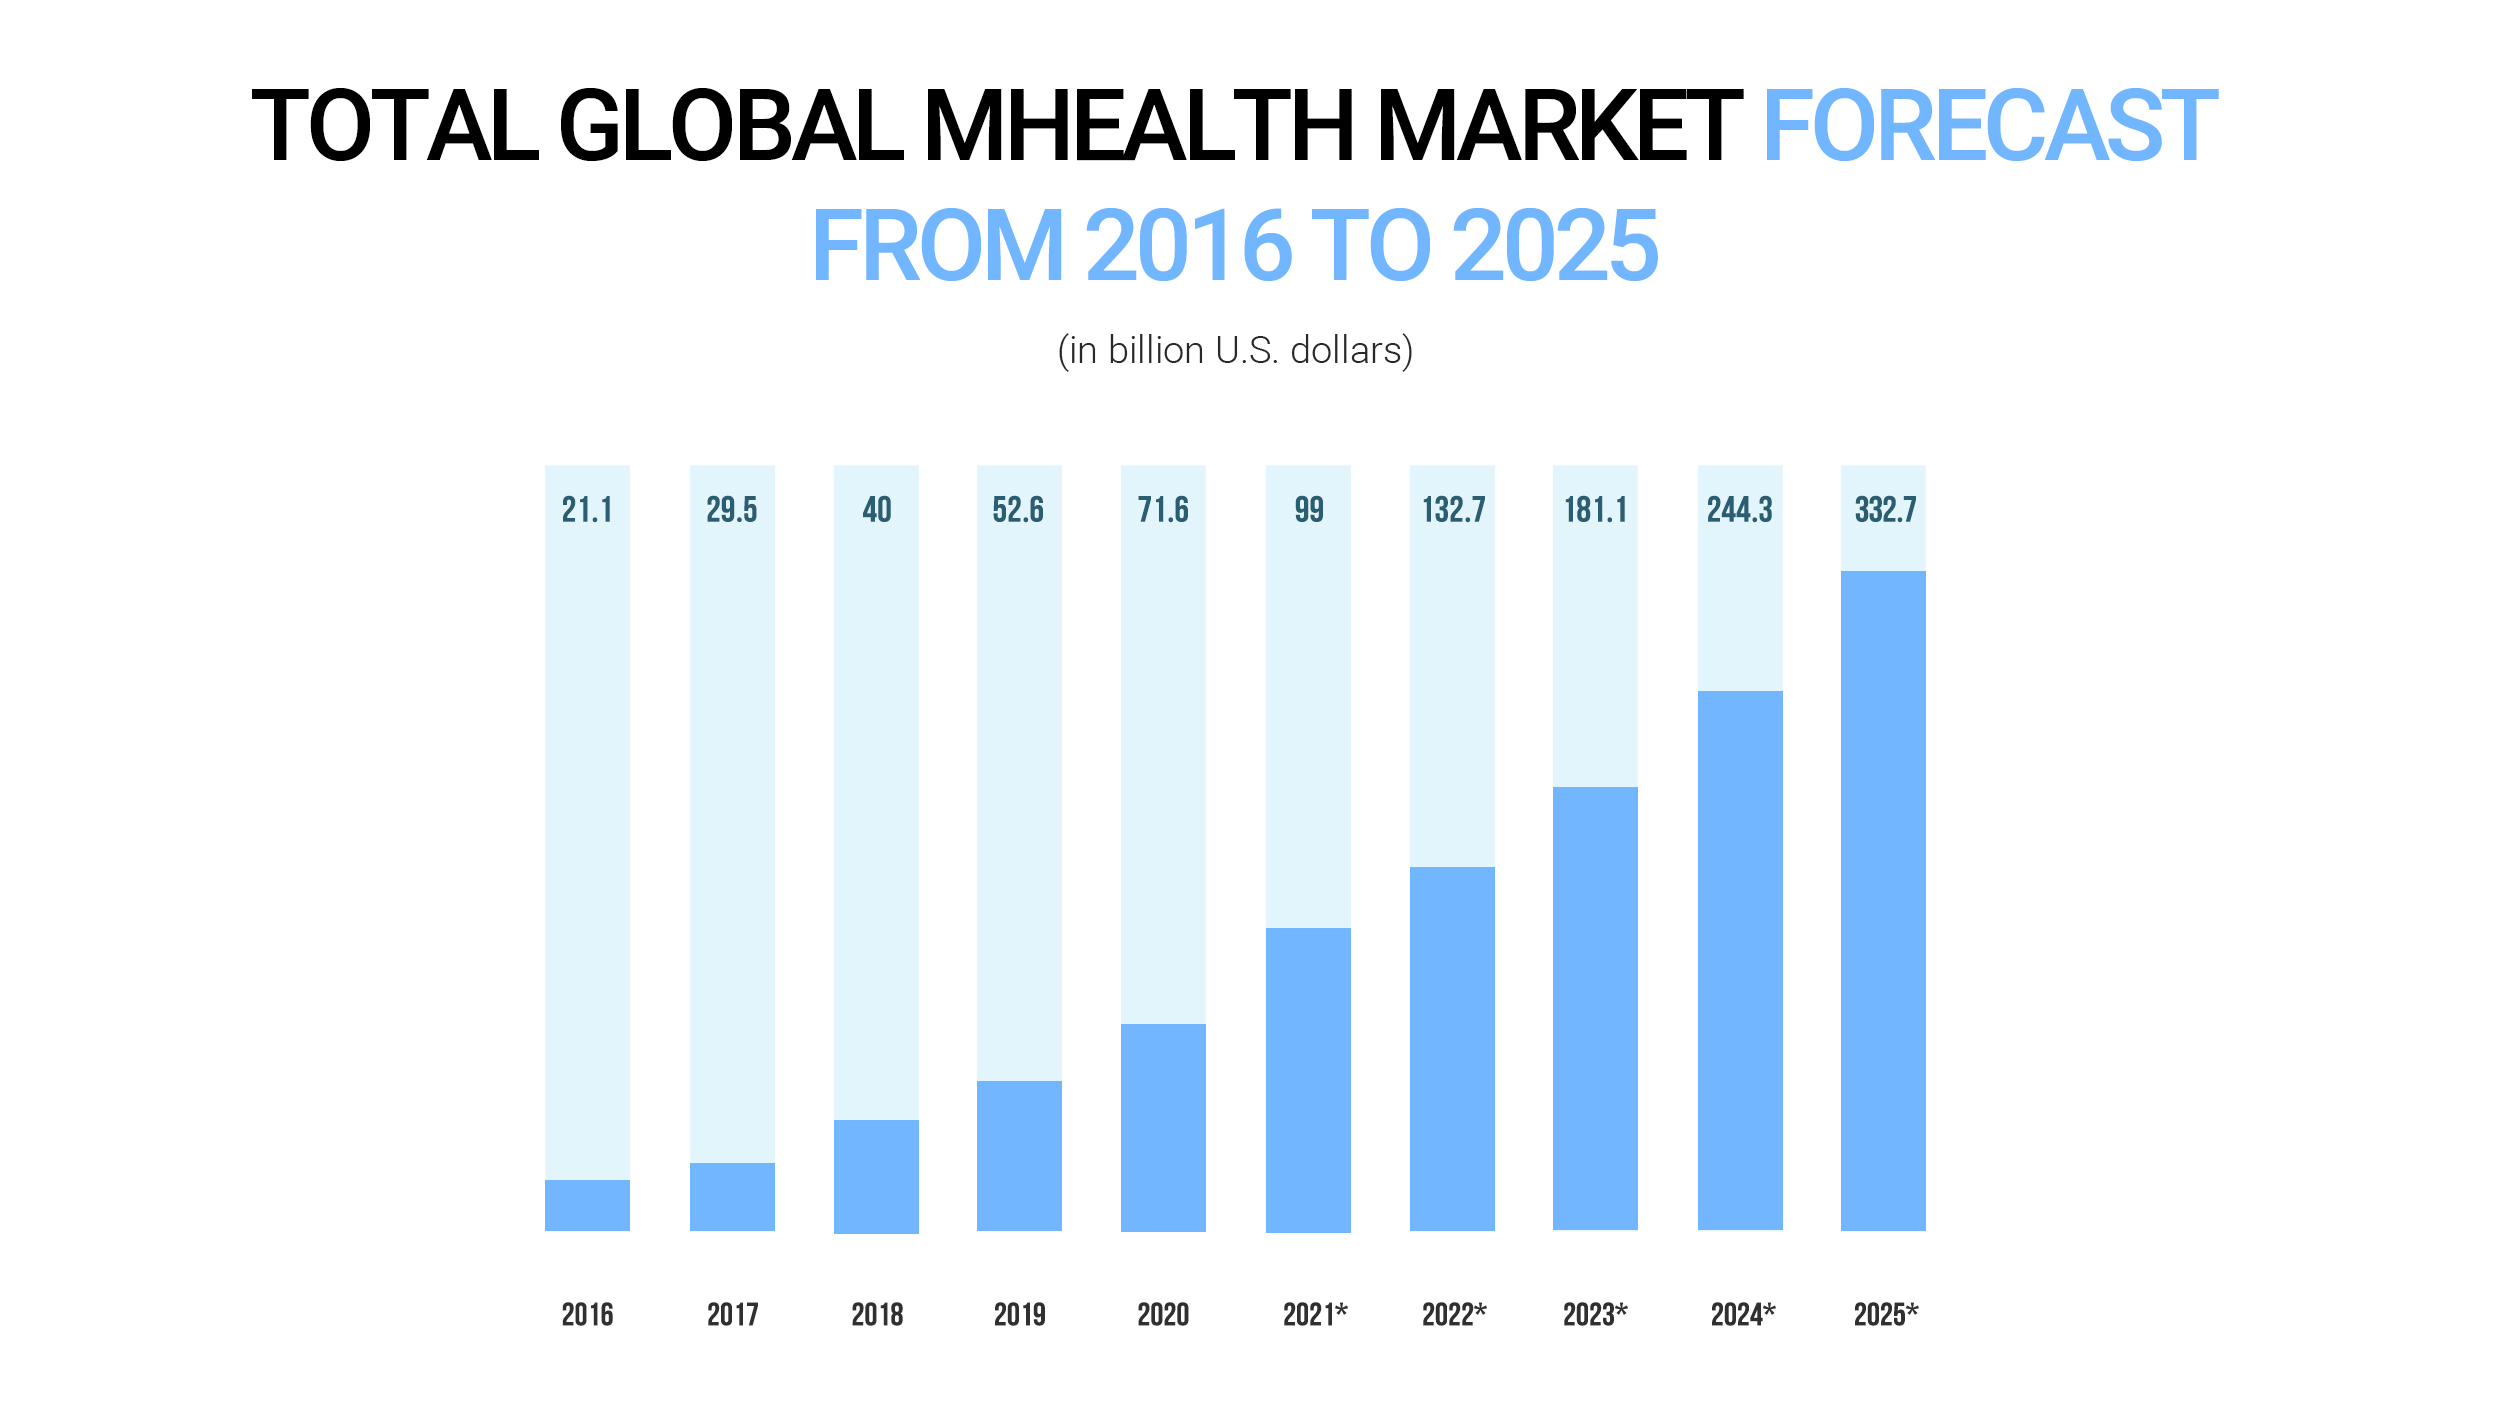 Total mhealth market size forecast worldwide 2016-2025